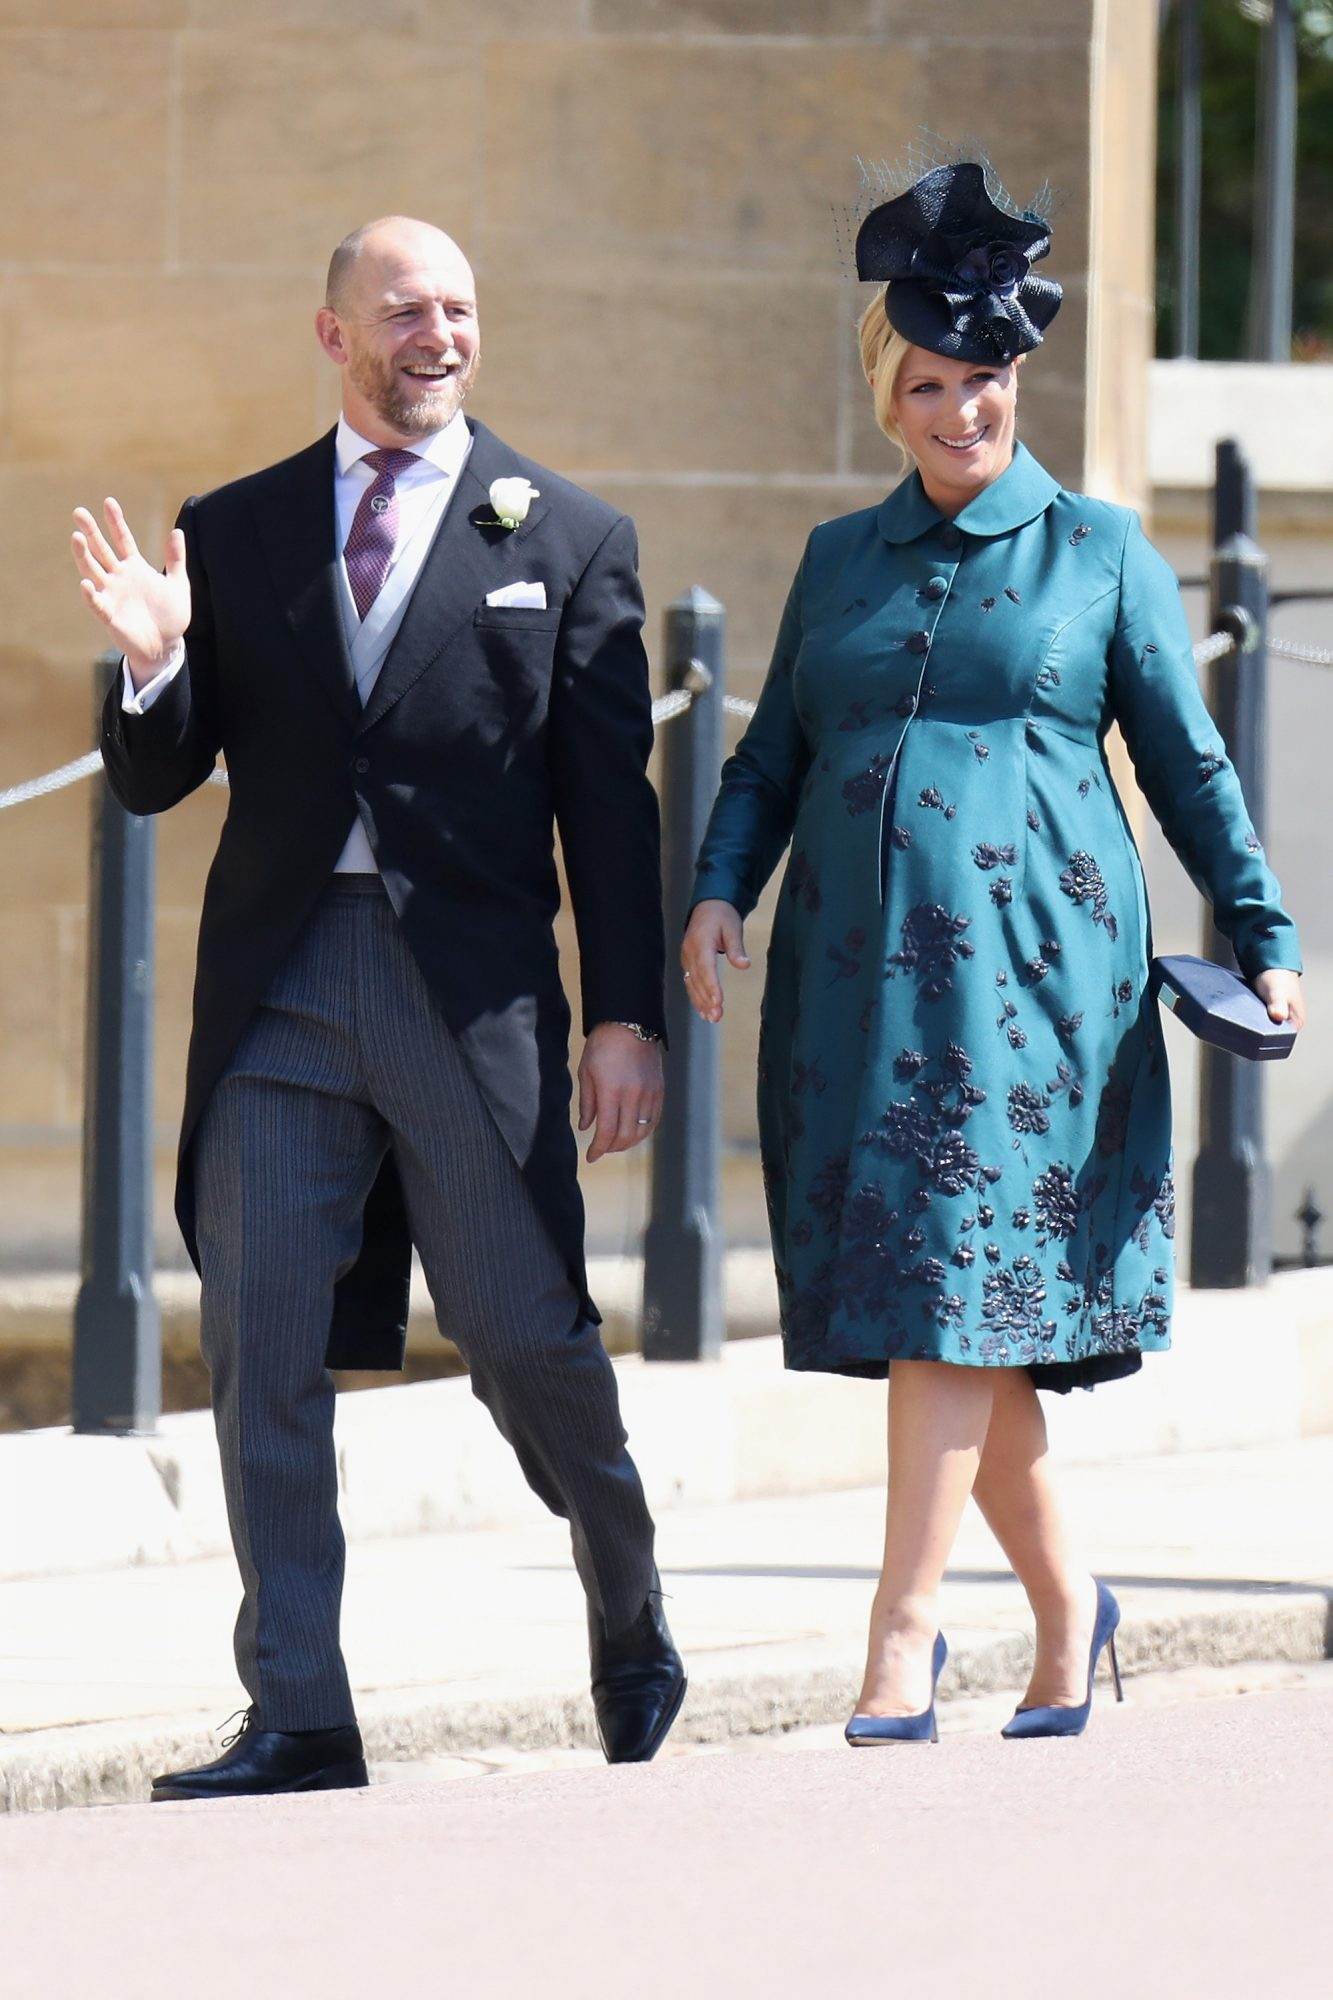 The Newest Royal Baby Shares Her Name with Queen Elizabeth